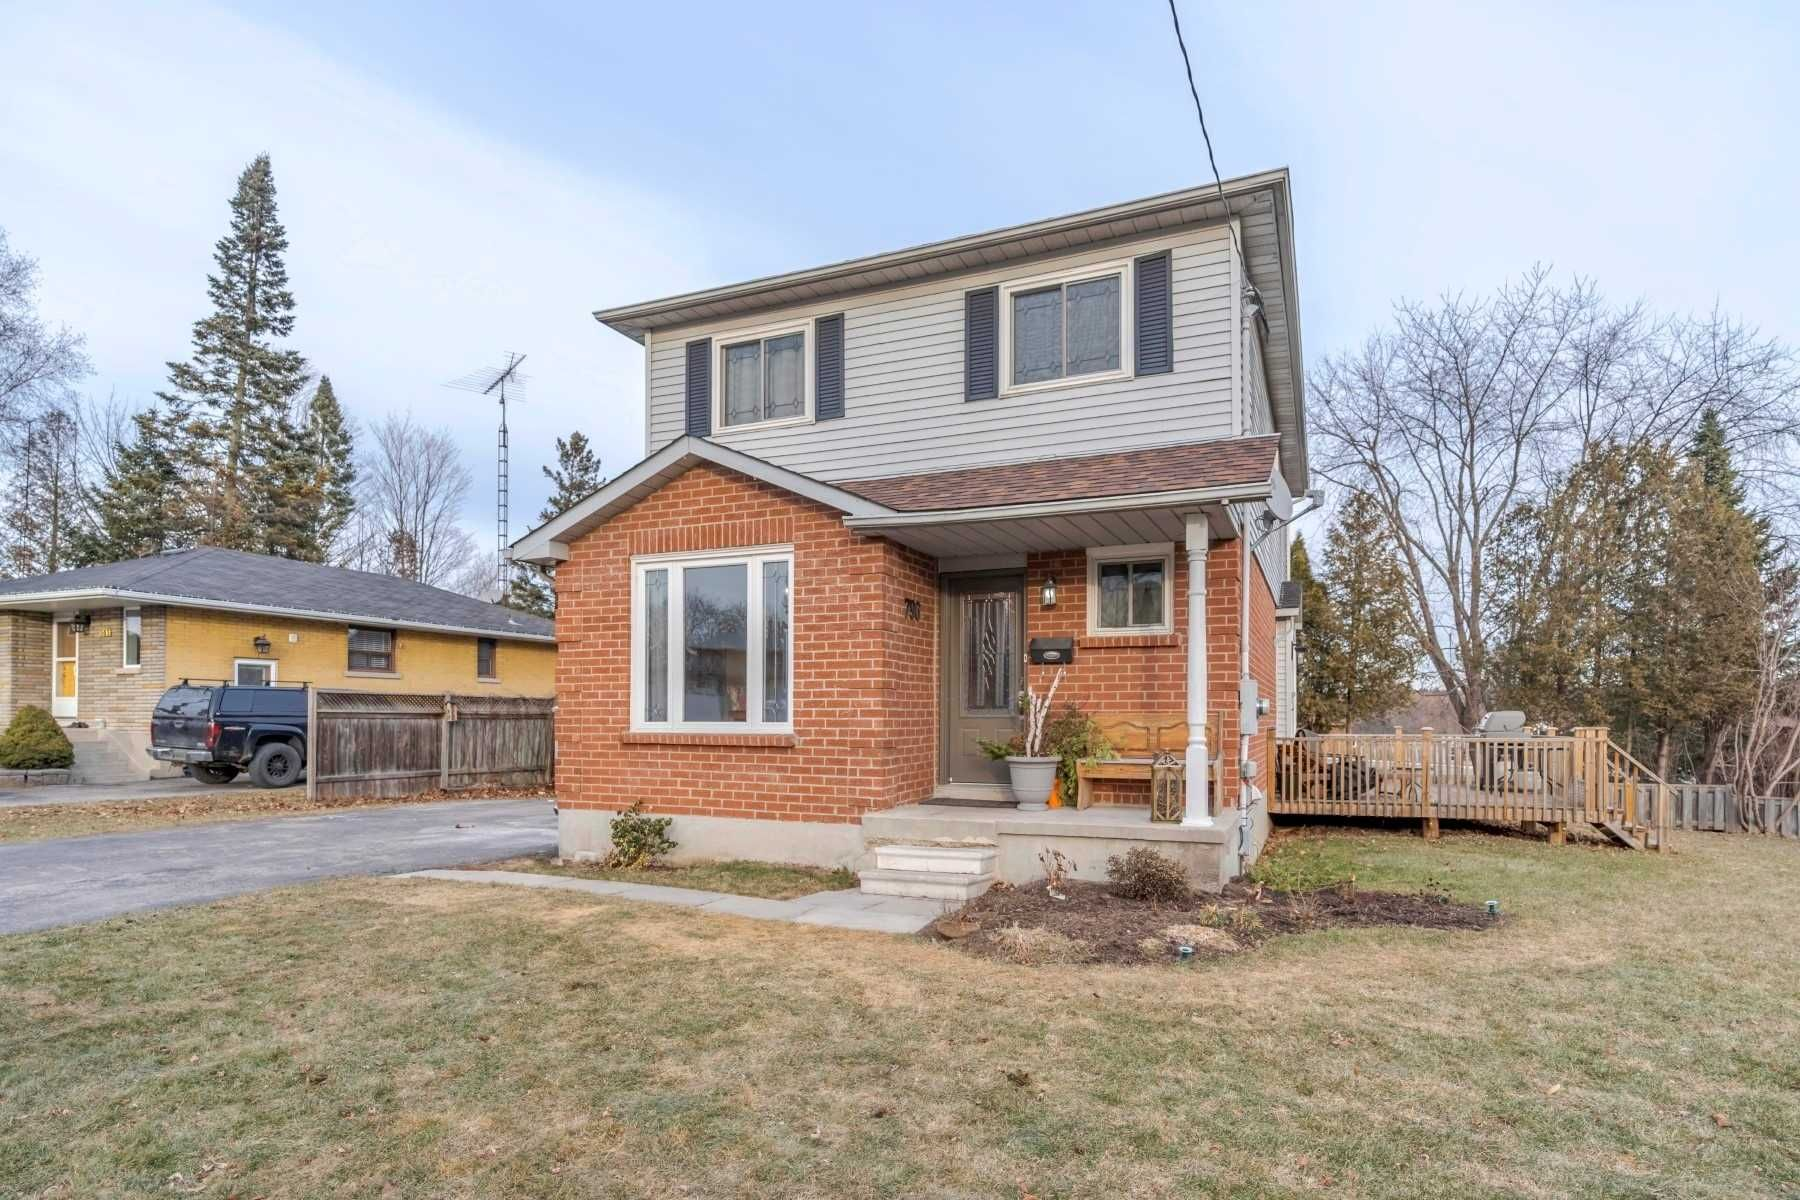 Main Photo: 796 Tennyson Avenue in Oshawa: Donevan House (2-Storey) for sale : MLS®# E4335954